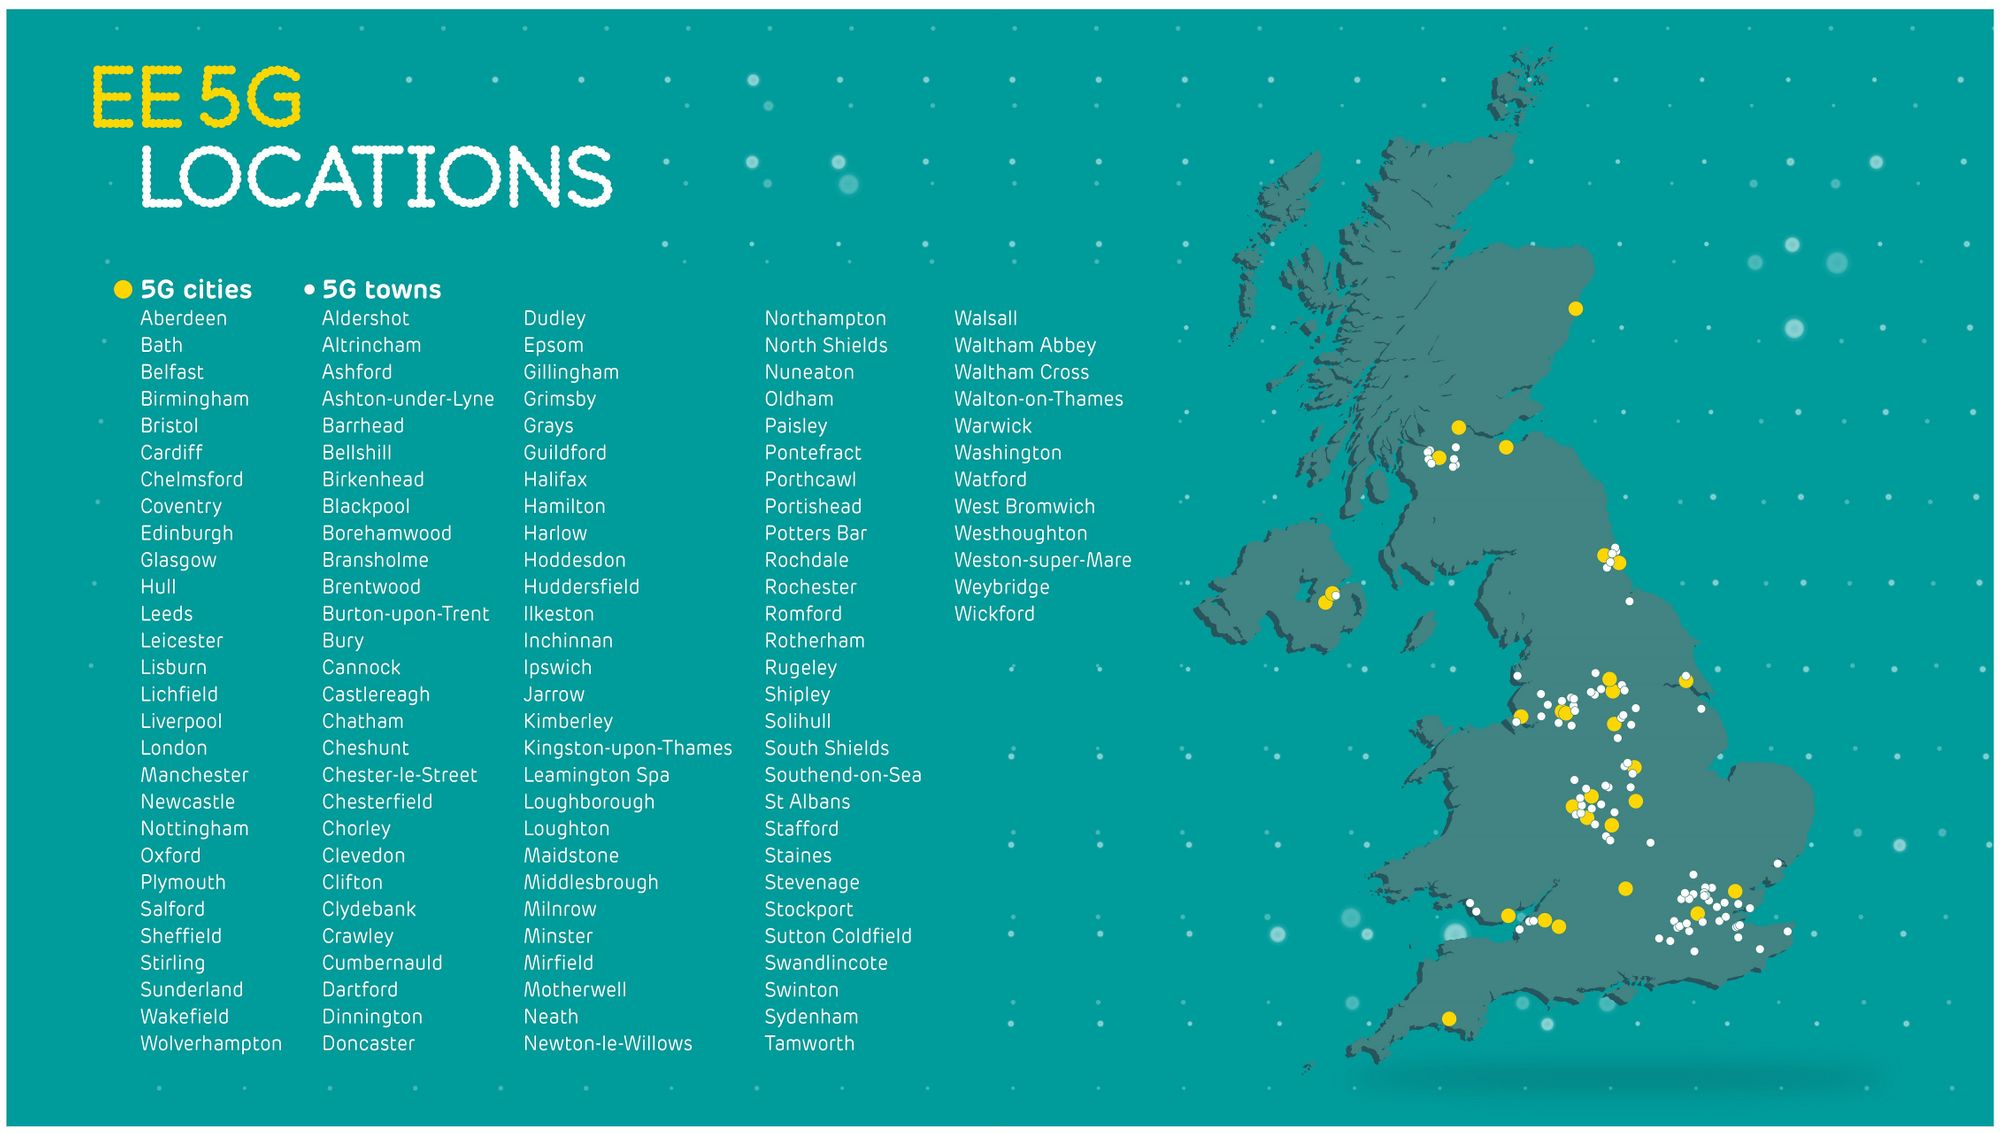 Map showing EE 5G locations in the UK